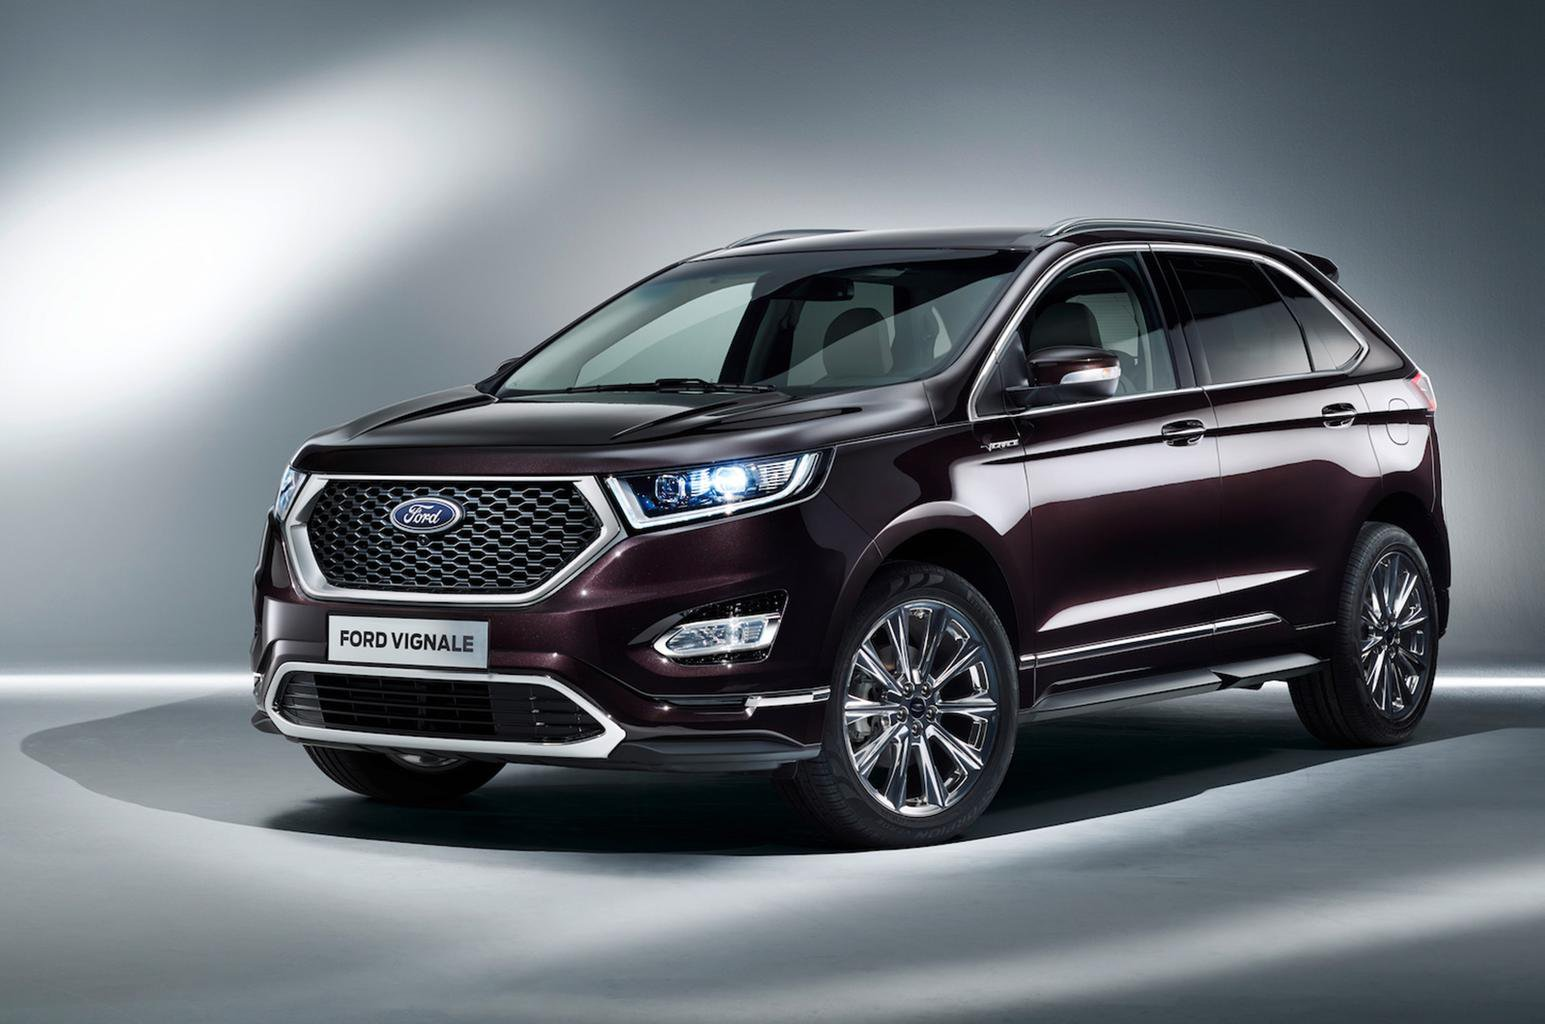 Ford reveals new Vignale line-up with Edge, Kuga and S-Max